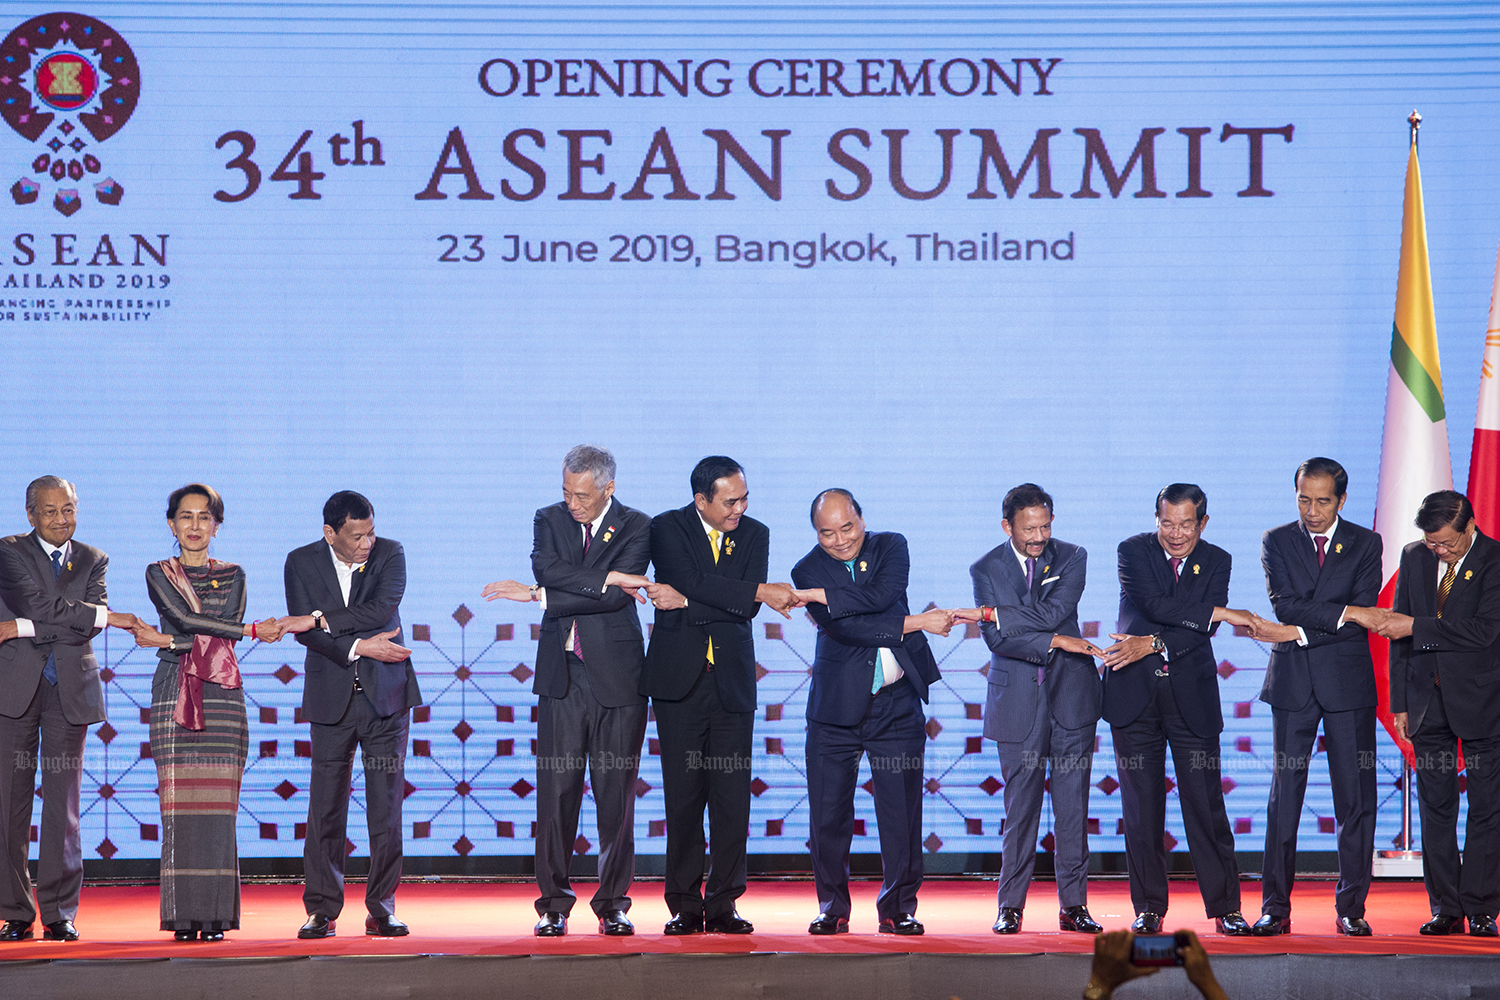 Leaders pose for a group photo during the opening ceremony of the Asean summit at the Athenee Hotel in Bangkok on Sunday. (Photo by Pattarapong Chatpattarasill)